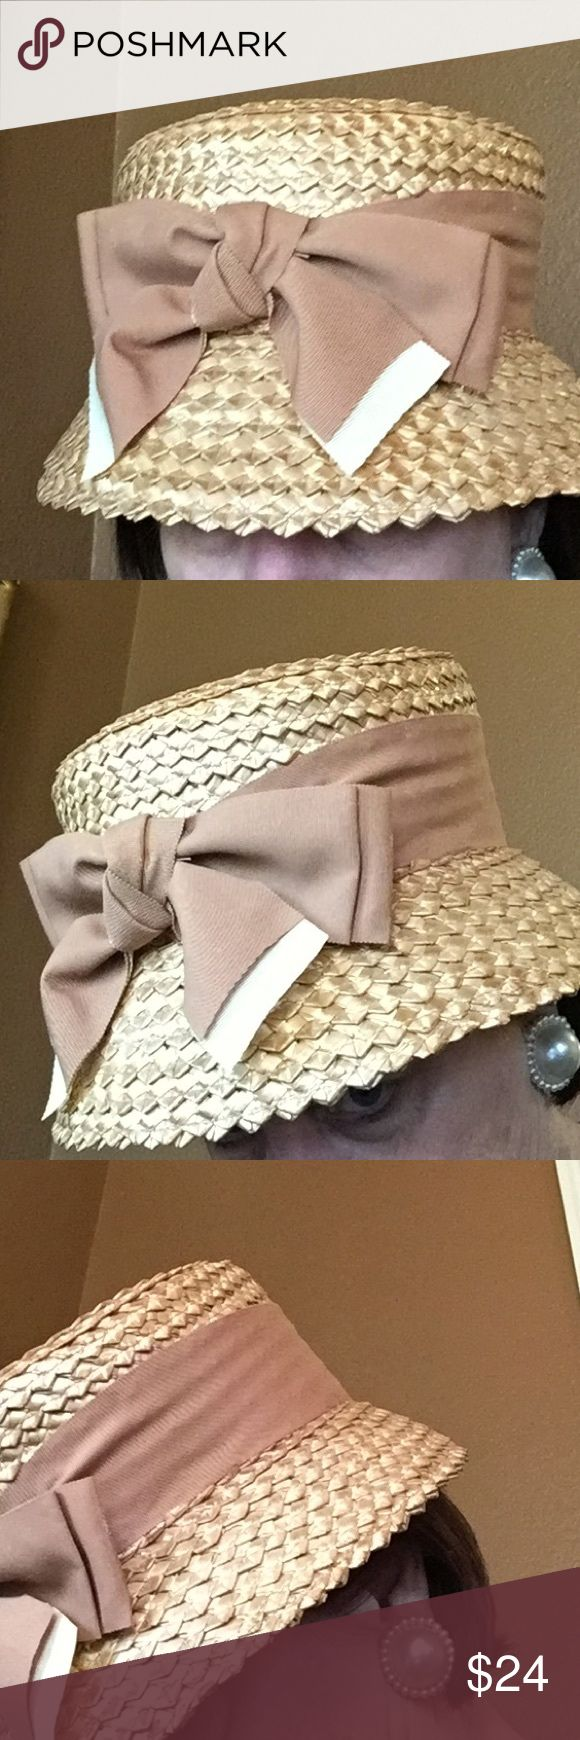 Vintage straw hat. Large grosgrain bow made to wear in front. Camel color ribbon, natural straw. In fabulous condition. No brand tag. Size medium. Shown with pearl clip earrings- not included. Vintage Accessories Hats